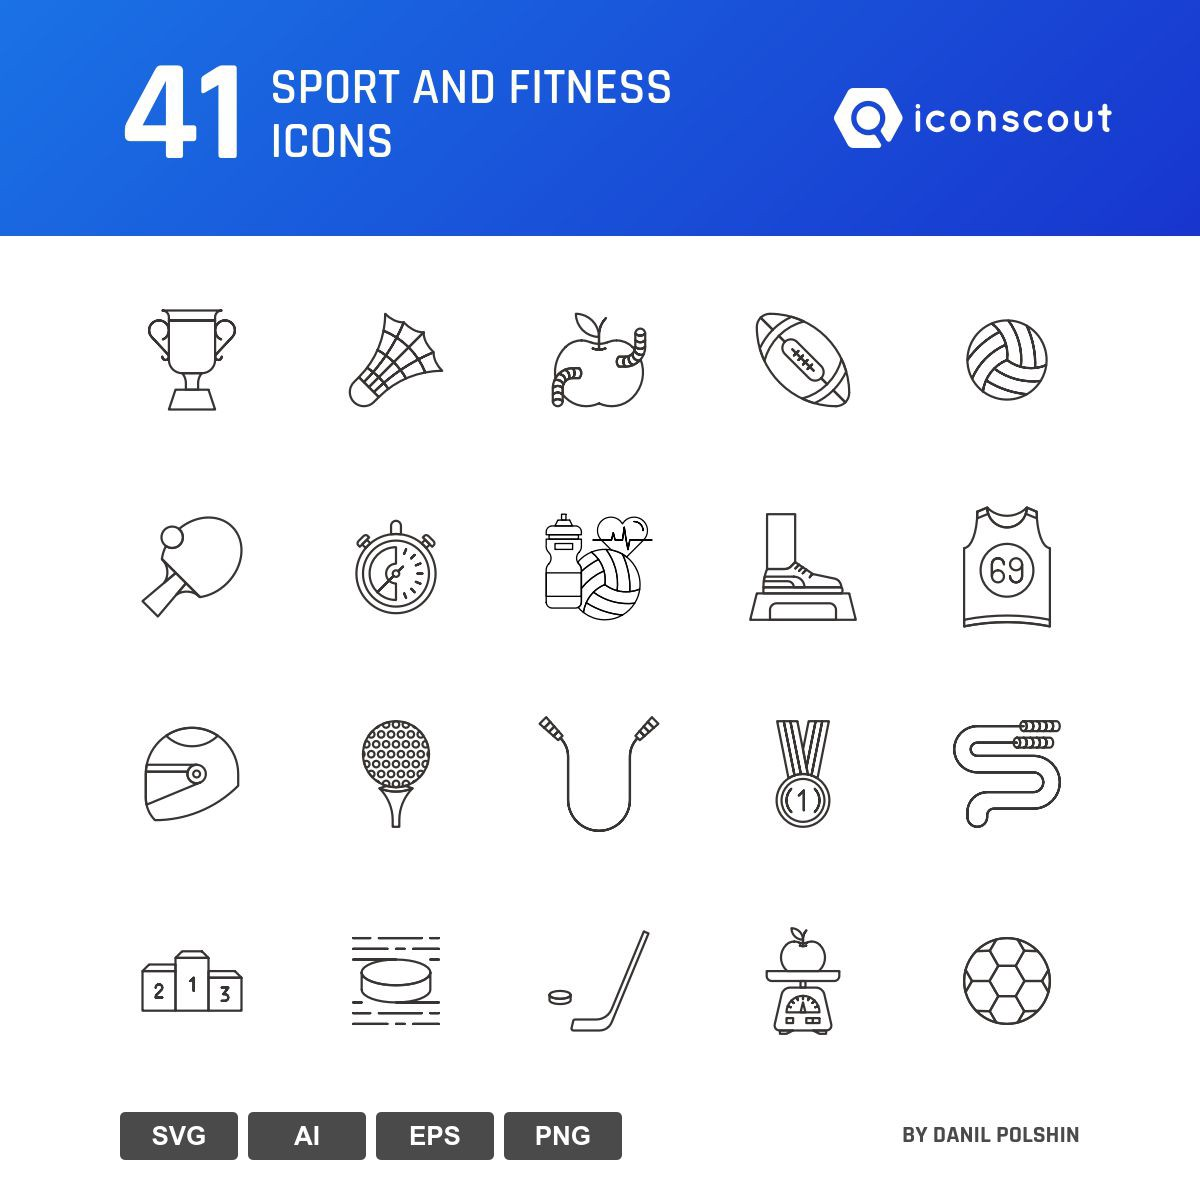 Sport And Fitness icons by Danil Polshin